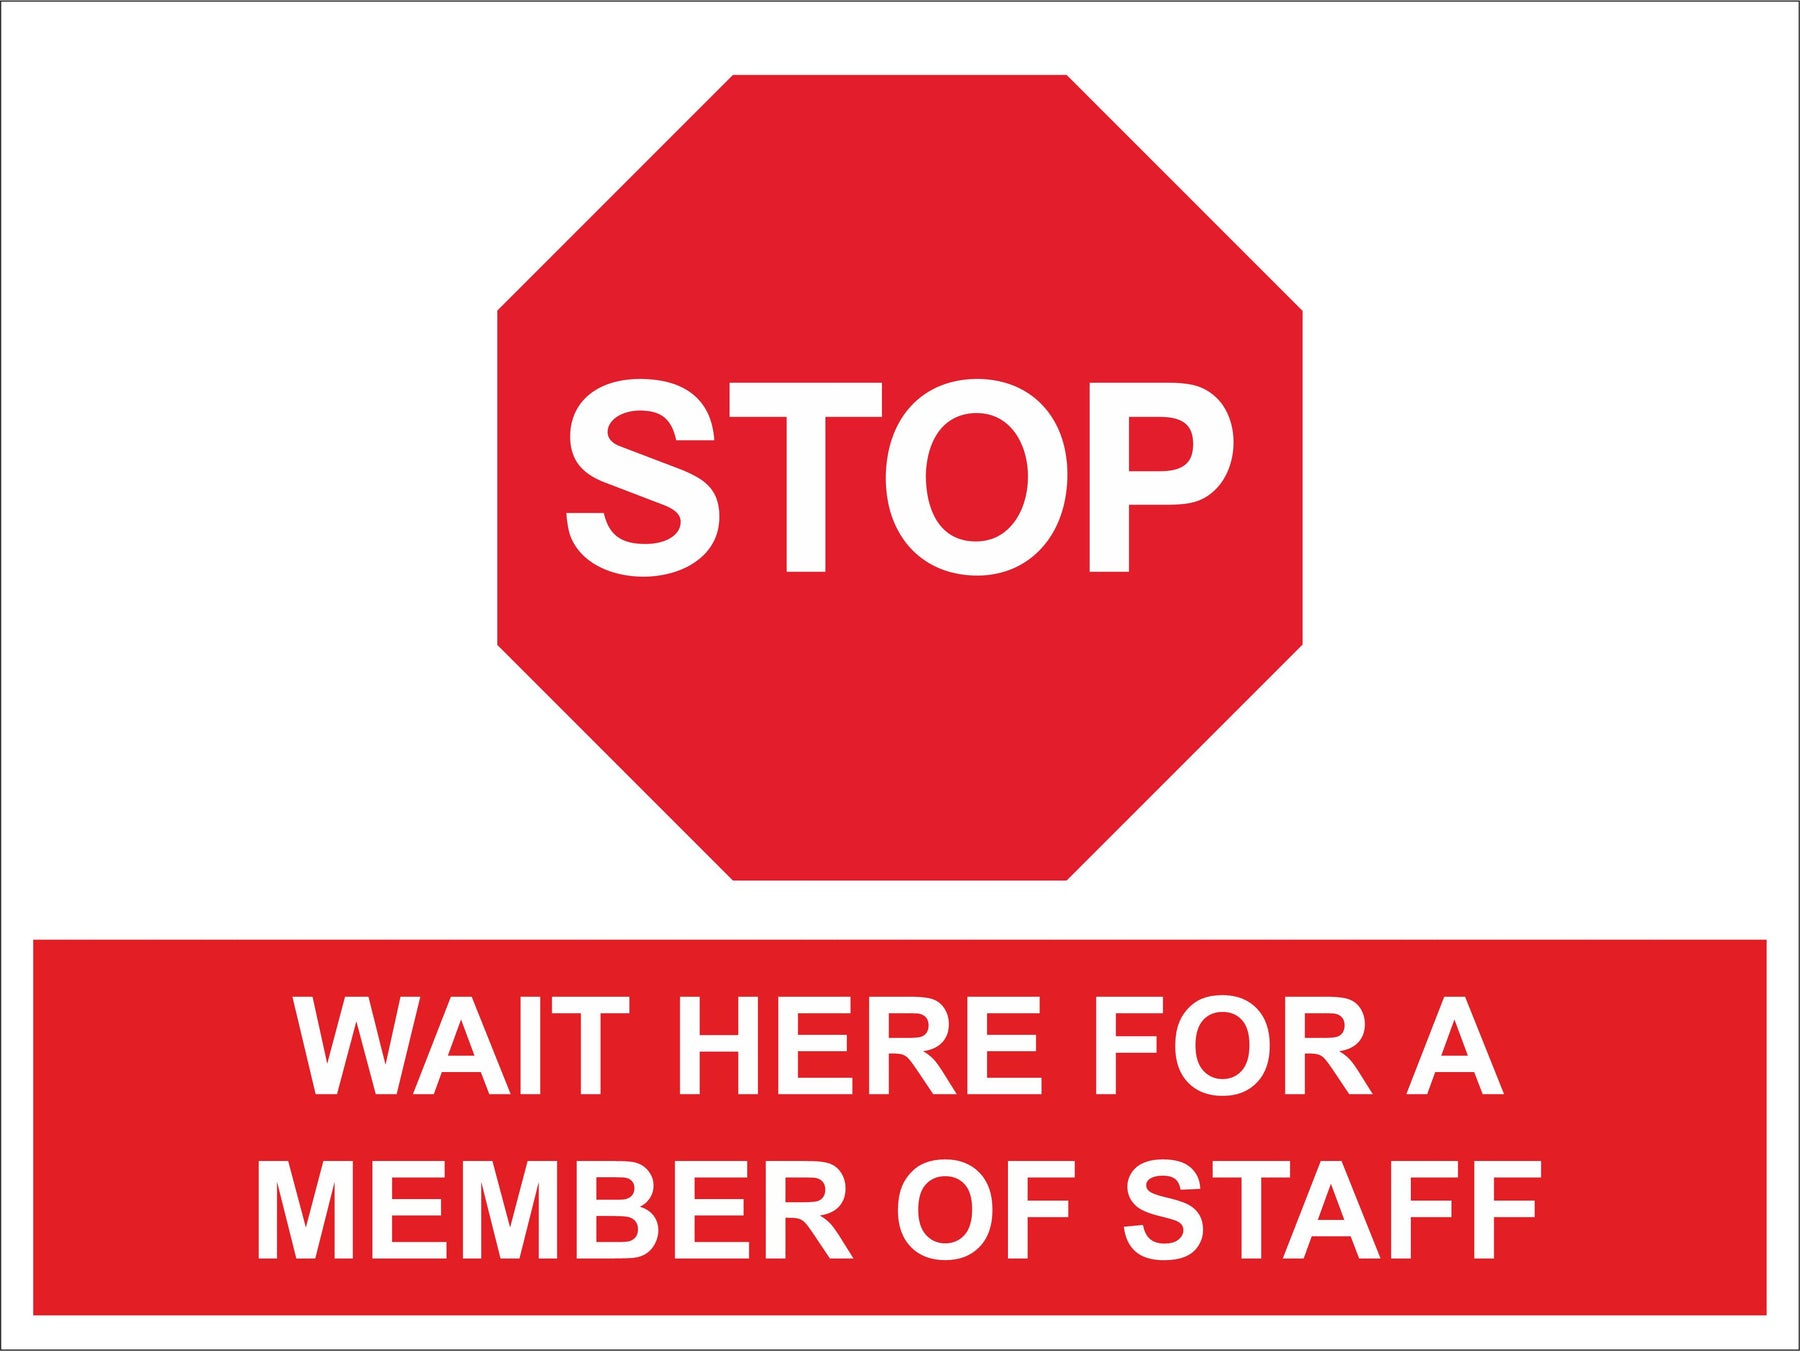 STOP WAIT HERE FOR A MEMBER OF STAFF - COVID 19 SOCIAL DISTANCING SIGN